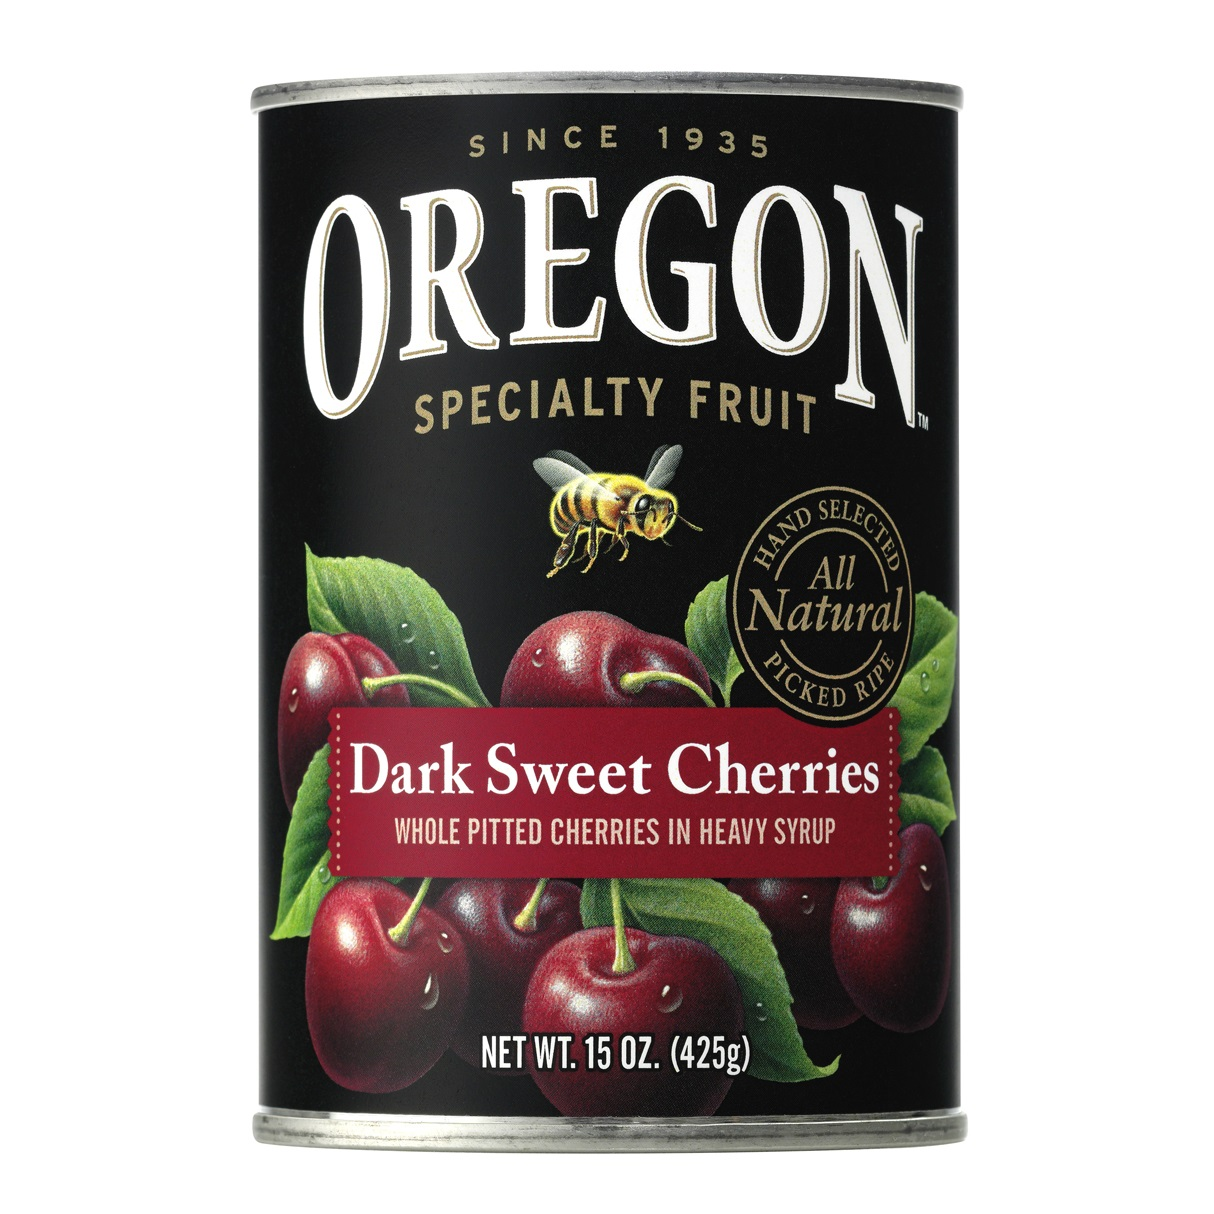 Oregon Fruit Products Pitted Dark Sweet Cherries Canned in Heavy Syrup, 15 oz